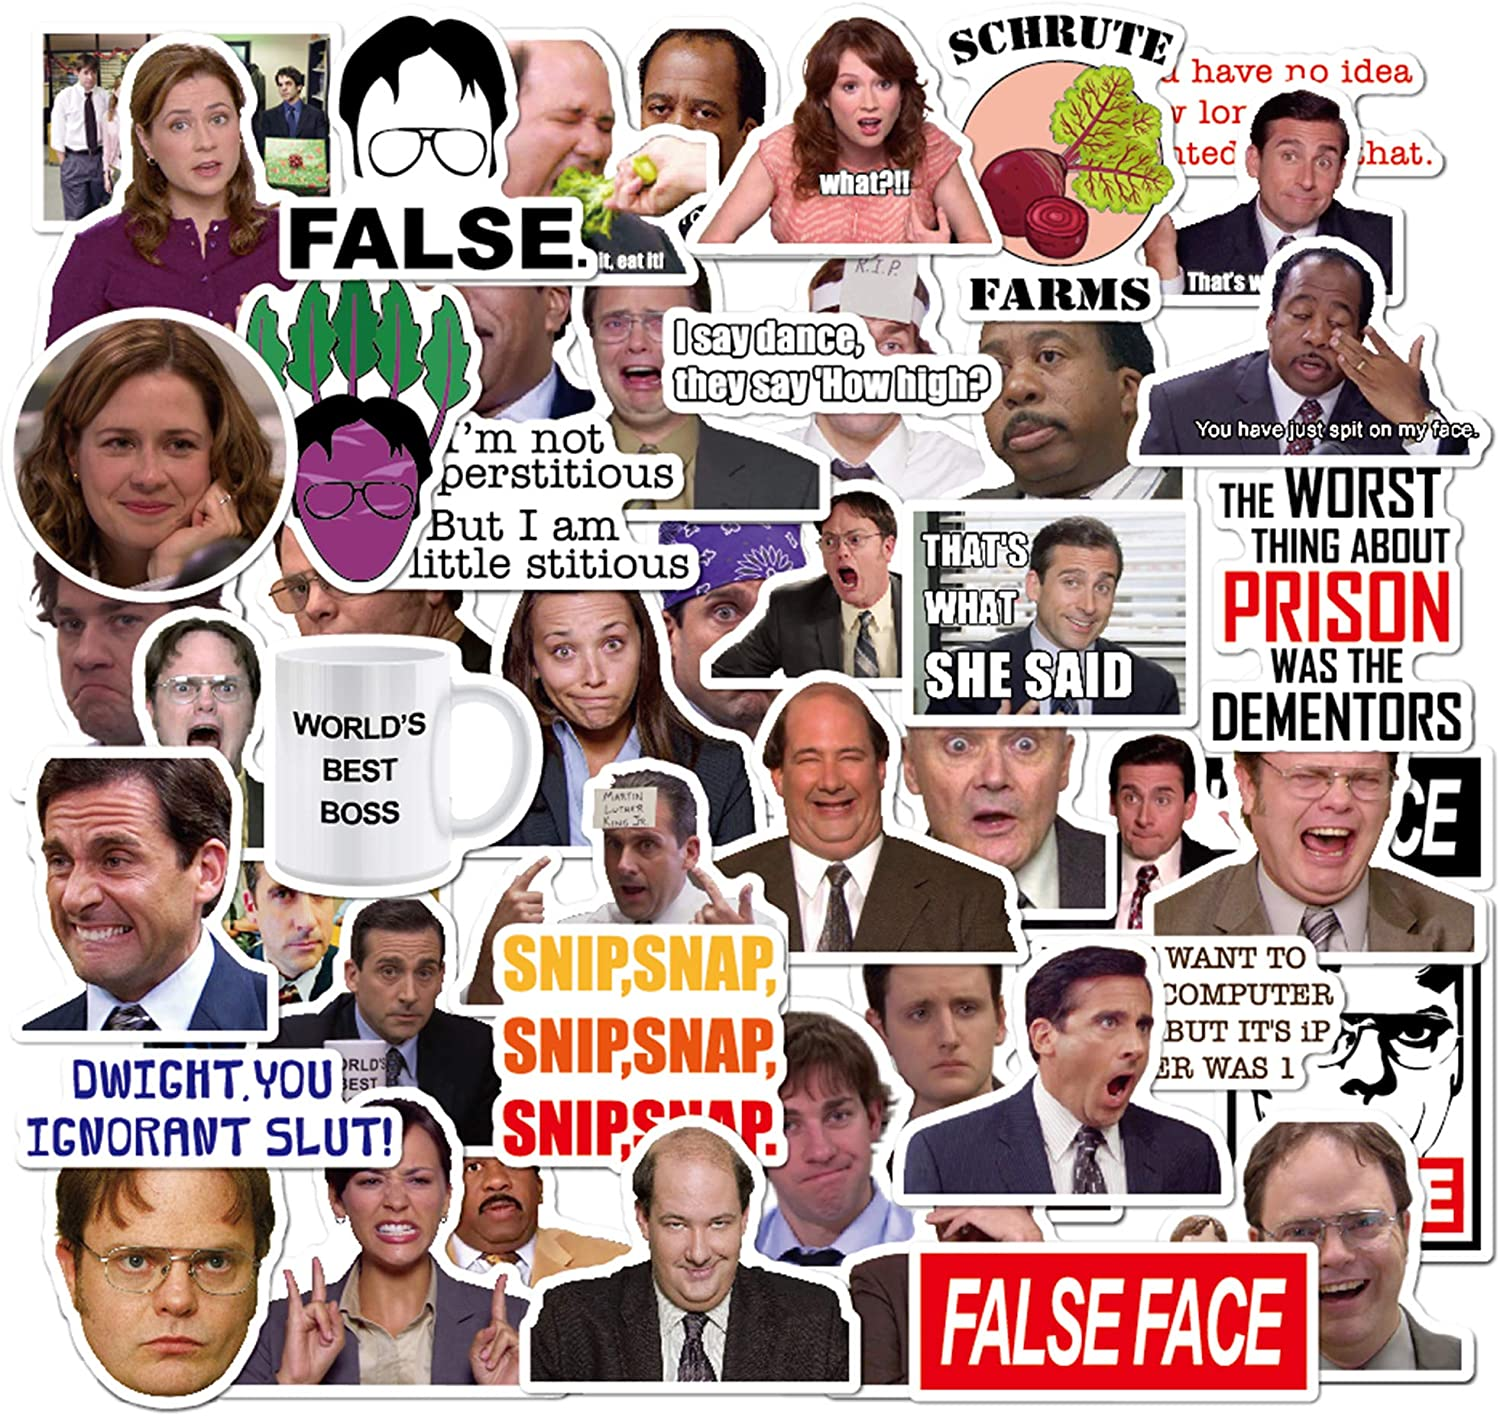 The Office Sticker Pack of 50 Stickers - The Office Stickers for Laptops, The Office Laptop Stickers, Funny Stickers for Laptops, Computers, Hydro Flasks (The Office)